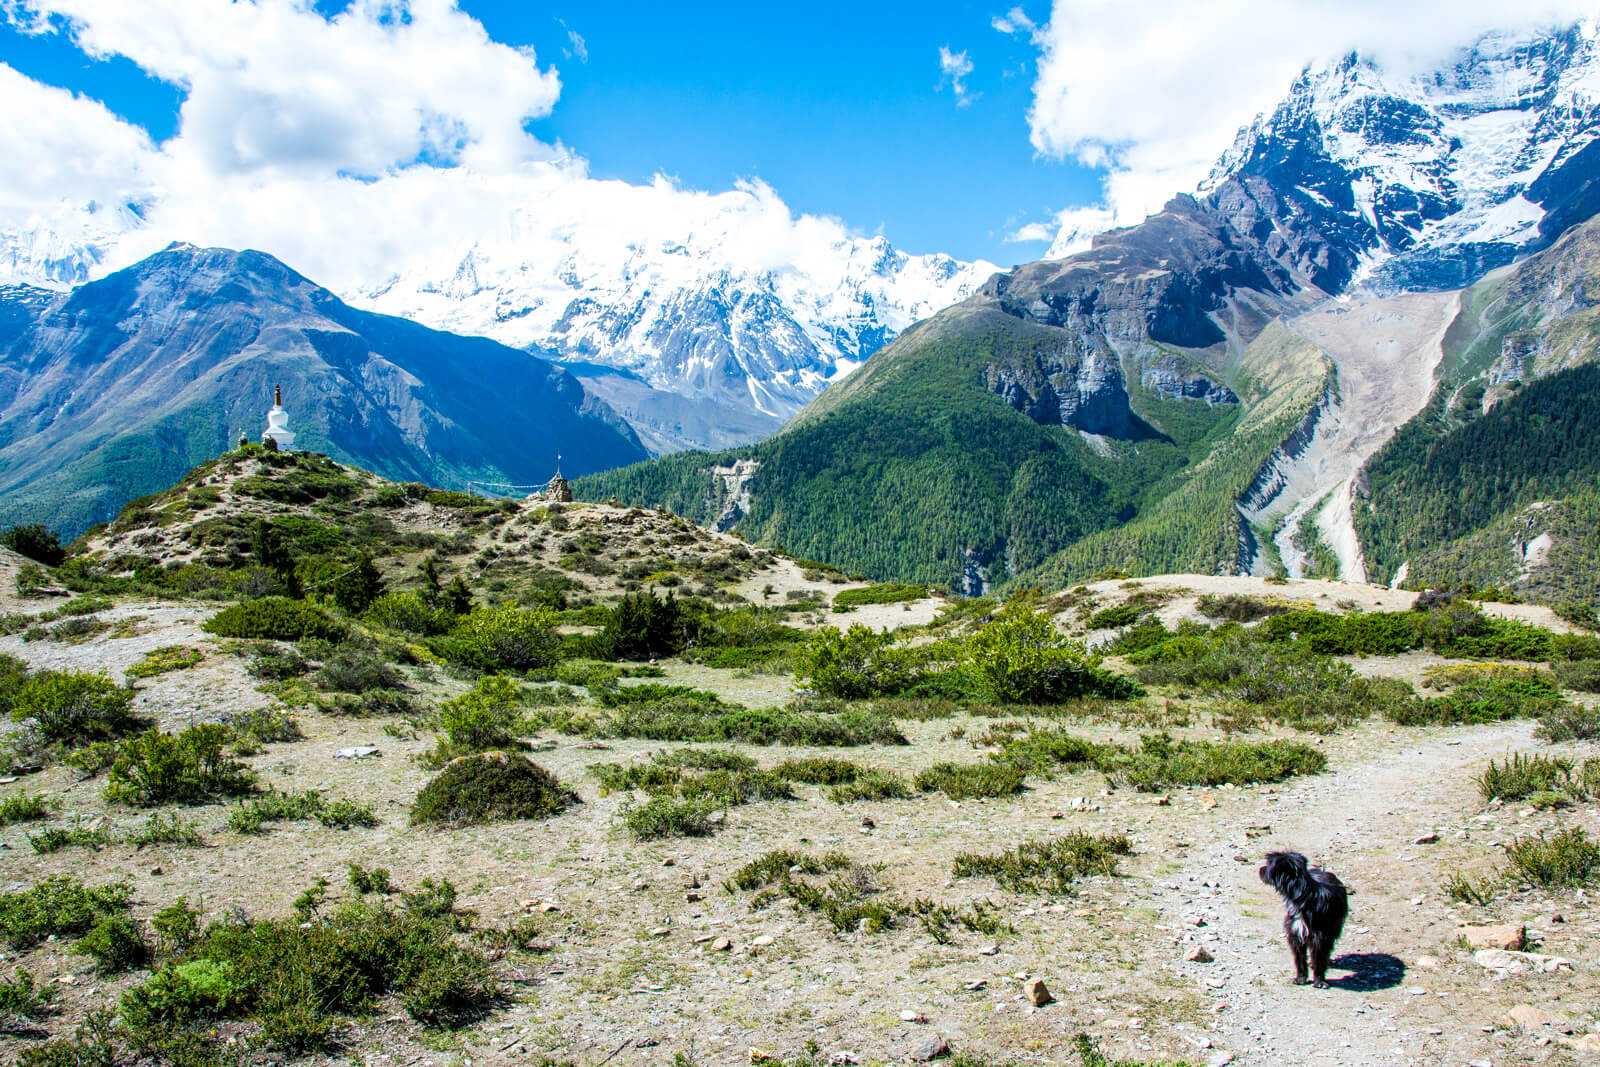 The Panoramic Trek to the Ice Lakes from Manang in the Annapurna Circuit Trek